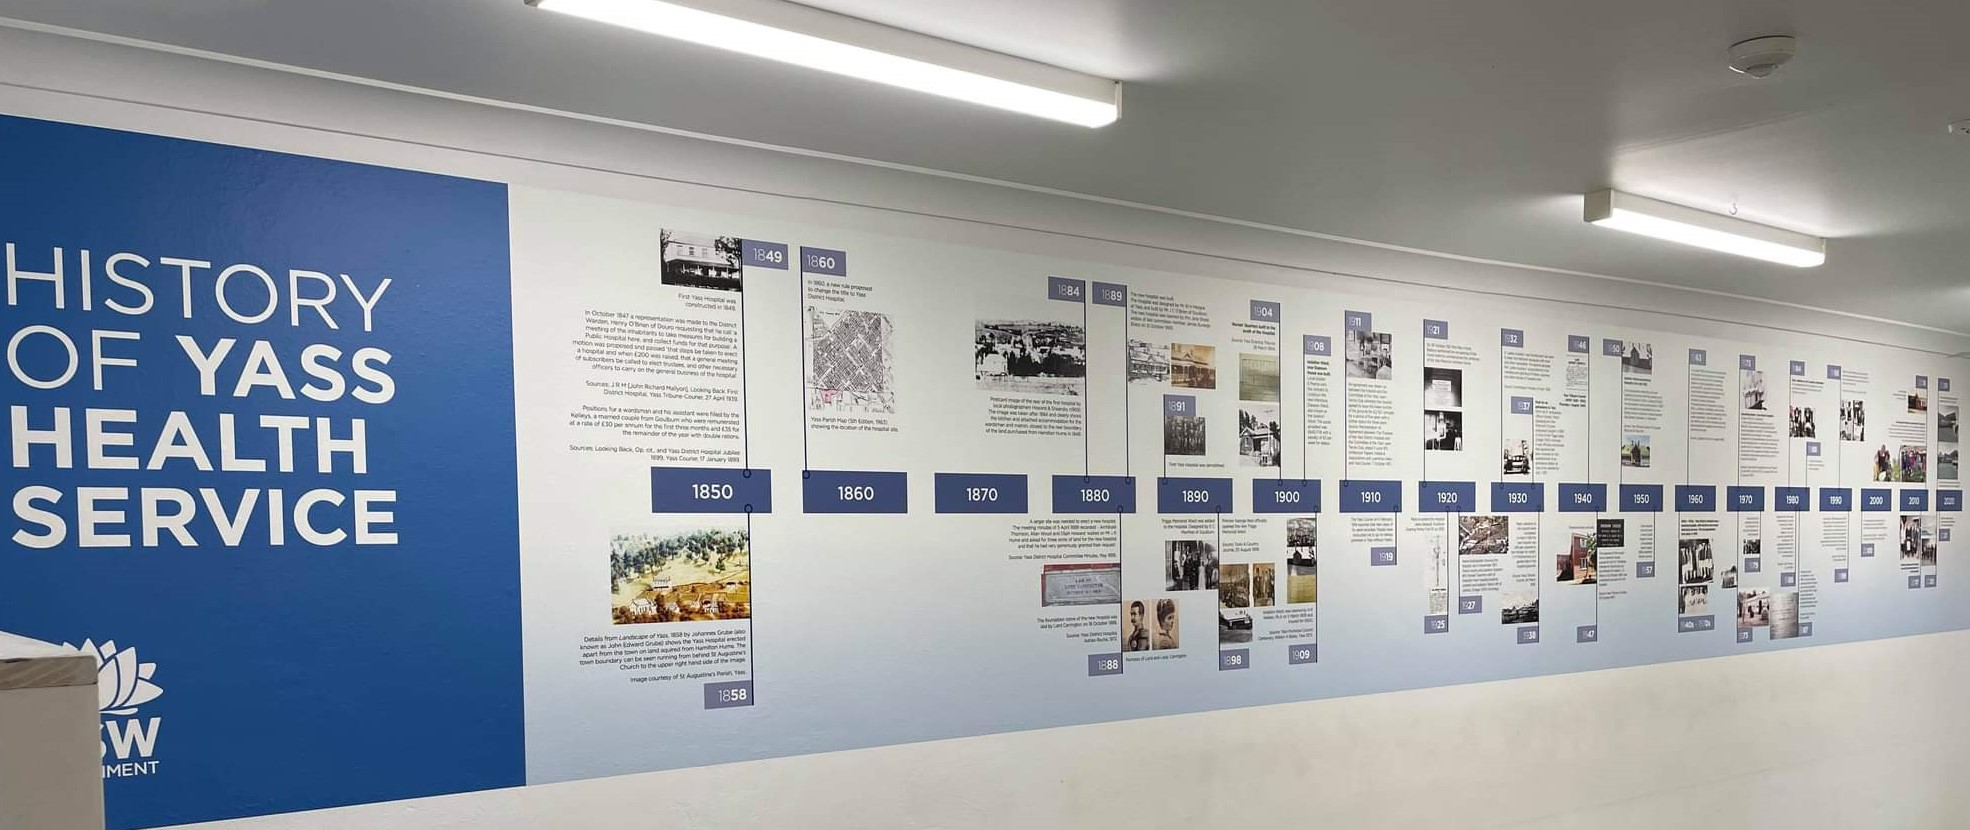 New heritage mural at Yass Hospital redevelopment showcases rich history